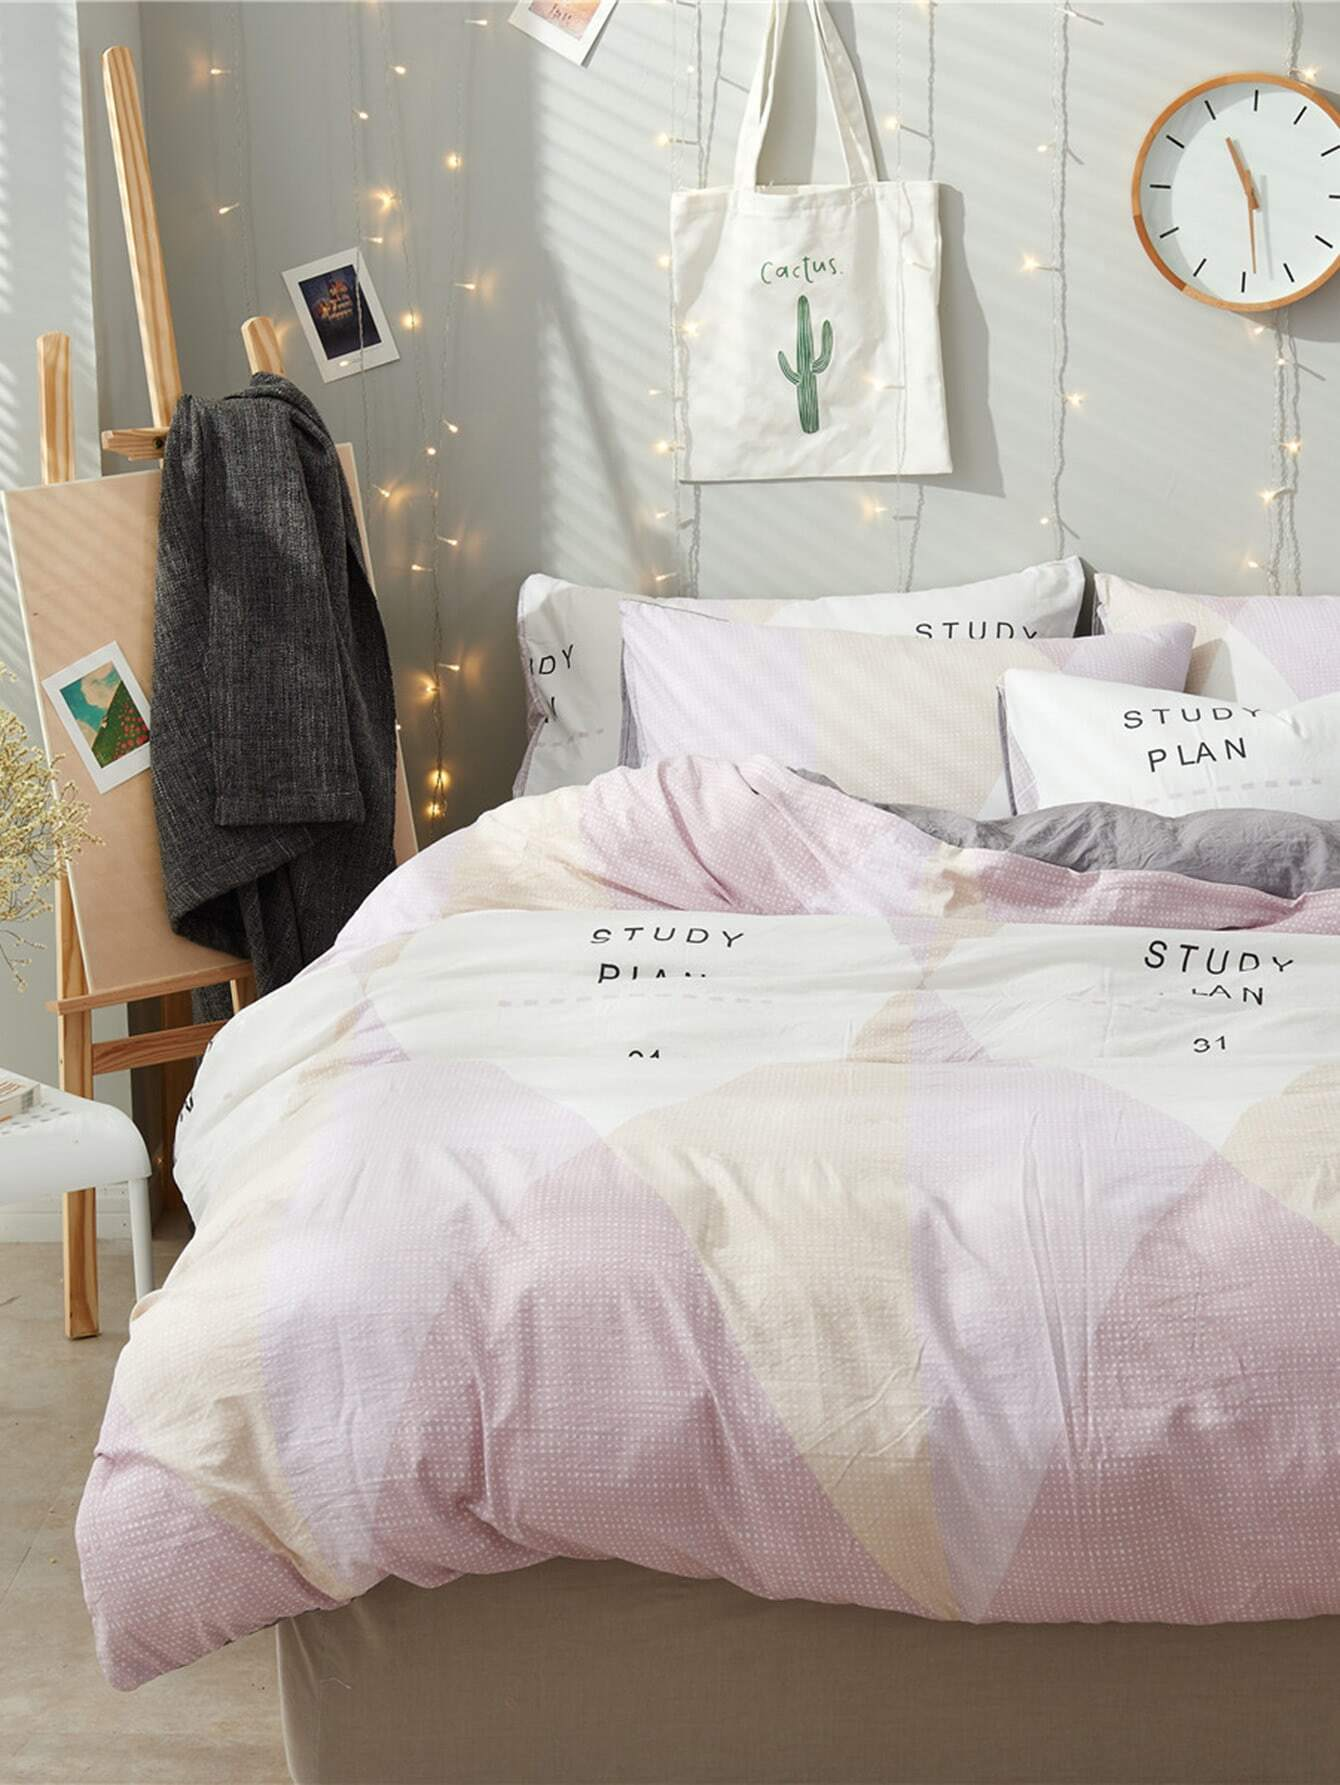 2.0m 4Pcs Colorblock Letter Print Bed Sheet Set